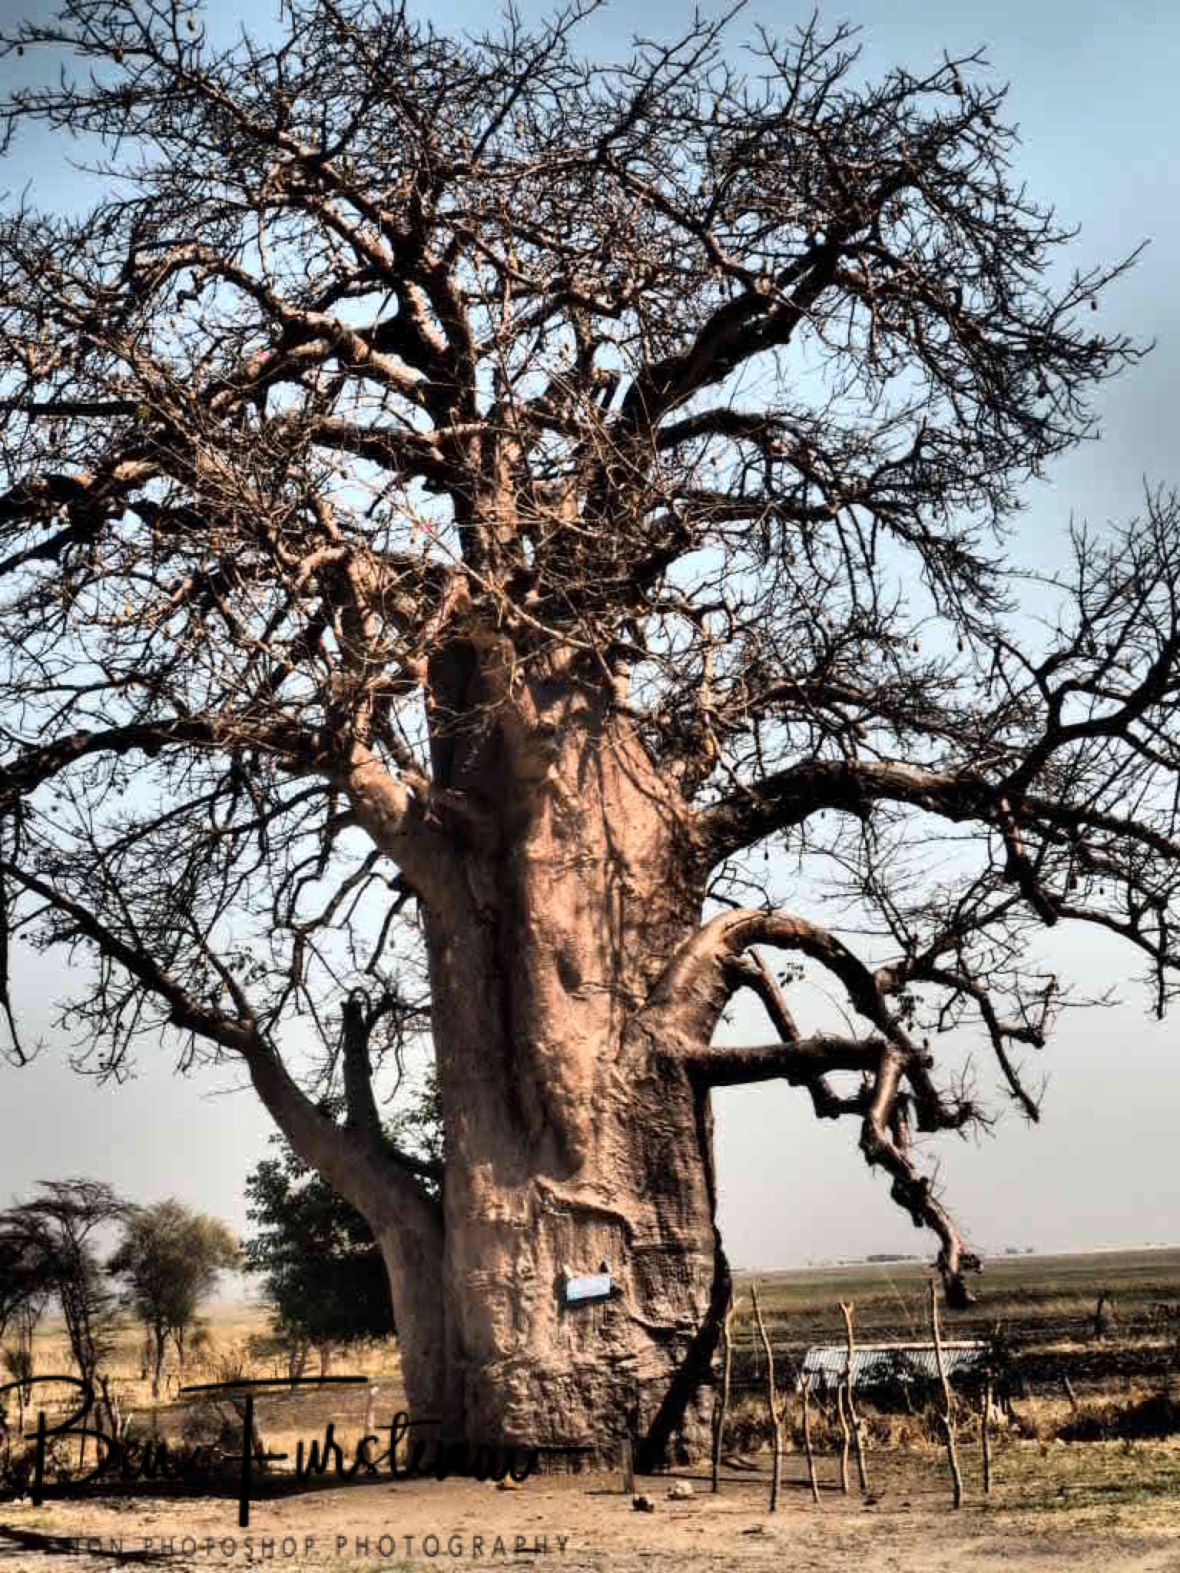 Giant Baobab trees along the swamps in Chobe National Park,Okavango Delta, Botswana